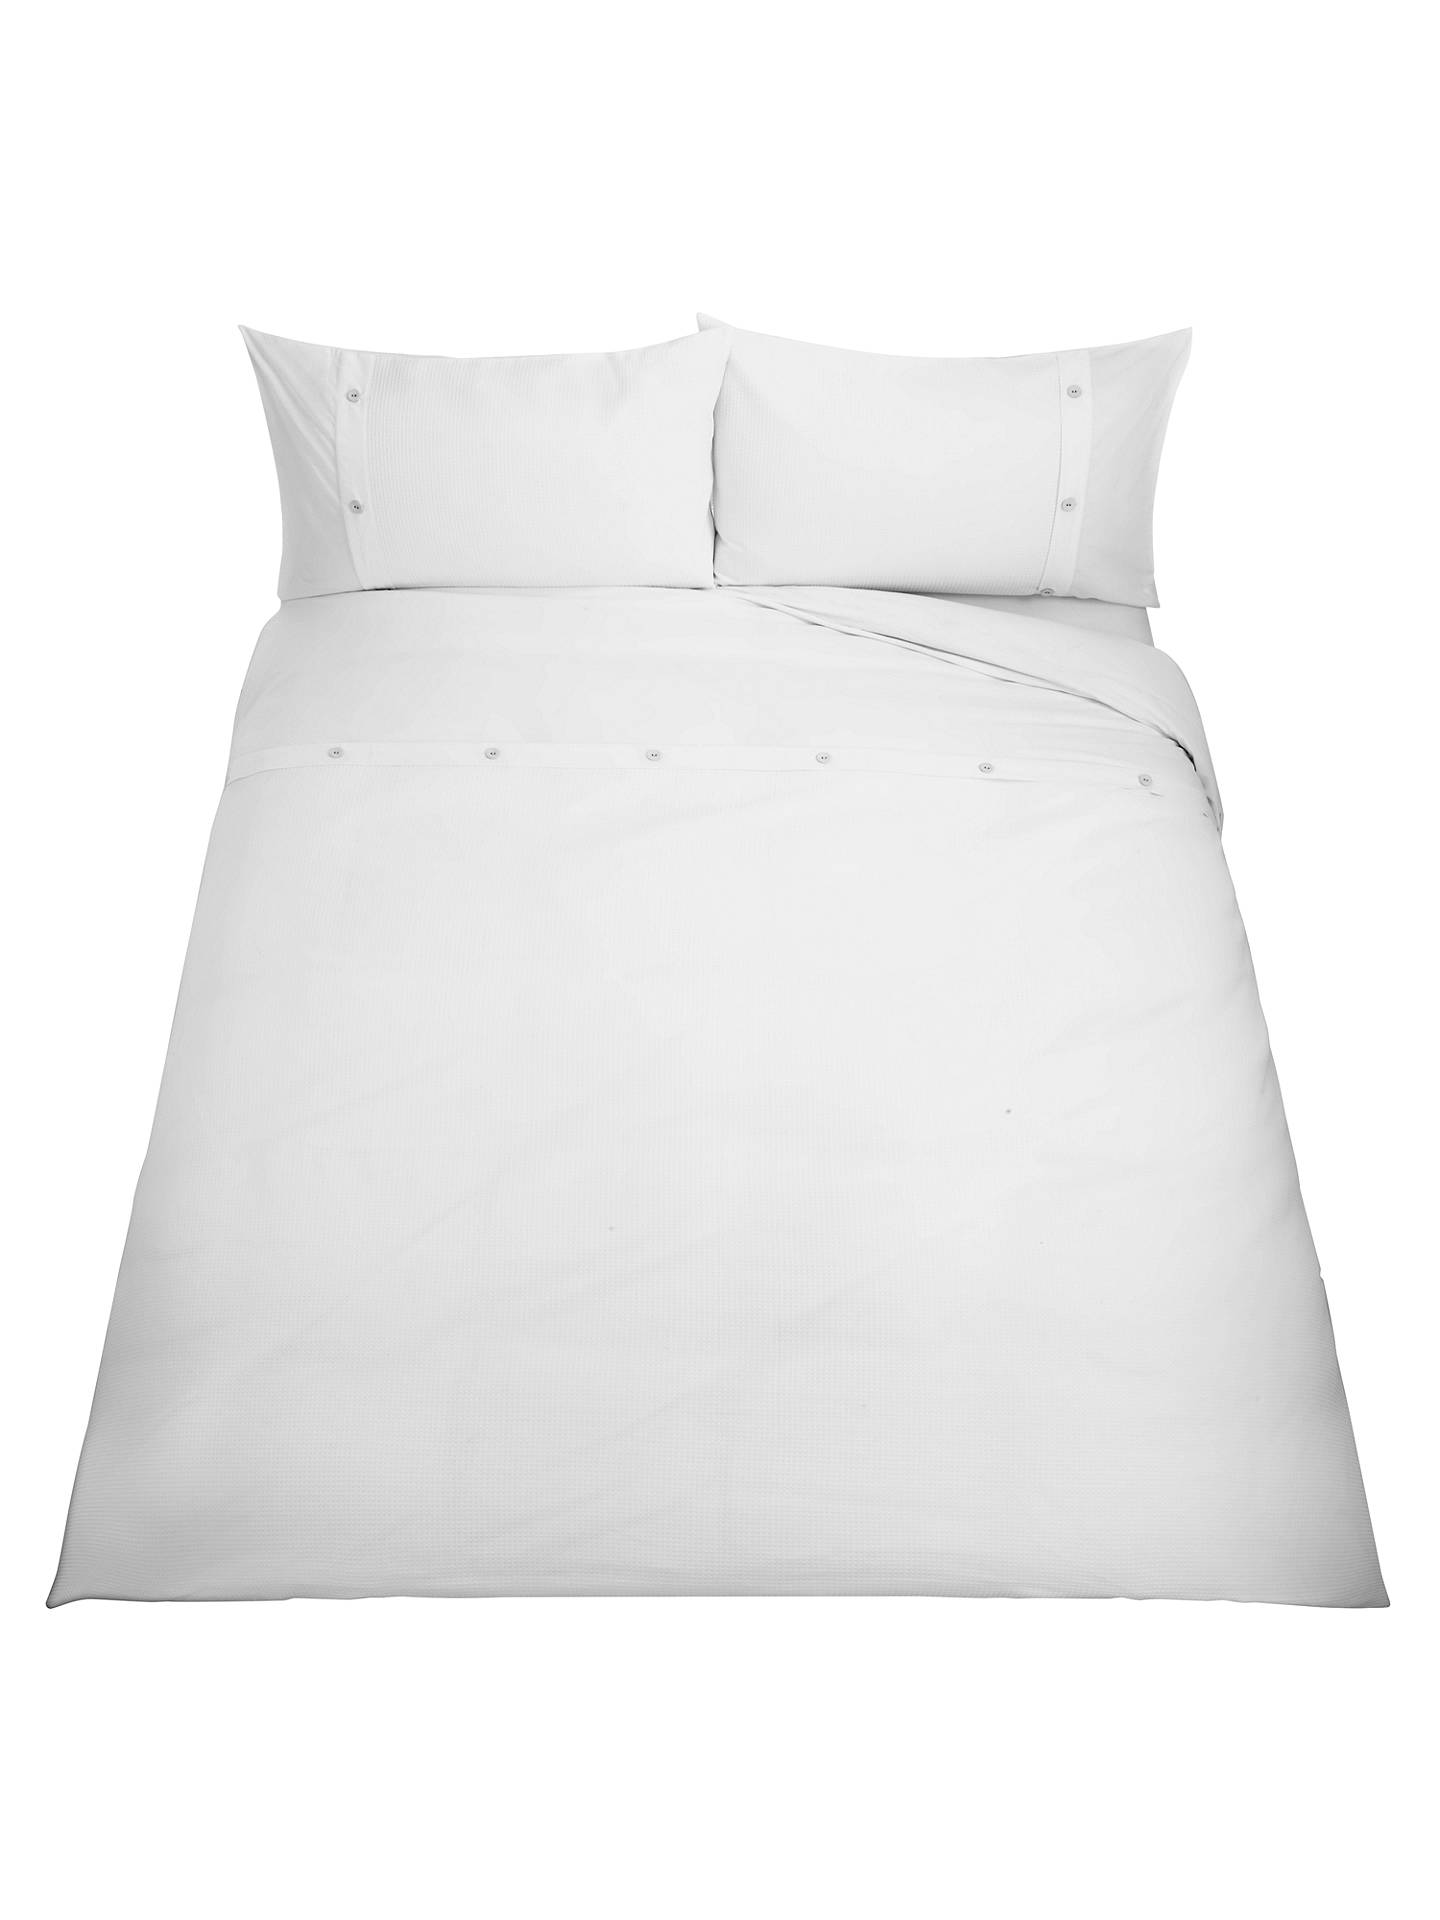 BuyJohn Lewis & Partners Easy Care Bordered Waffle Duvet Cover Set, White, Single Online at johnlewis.com